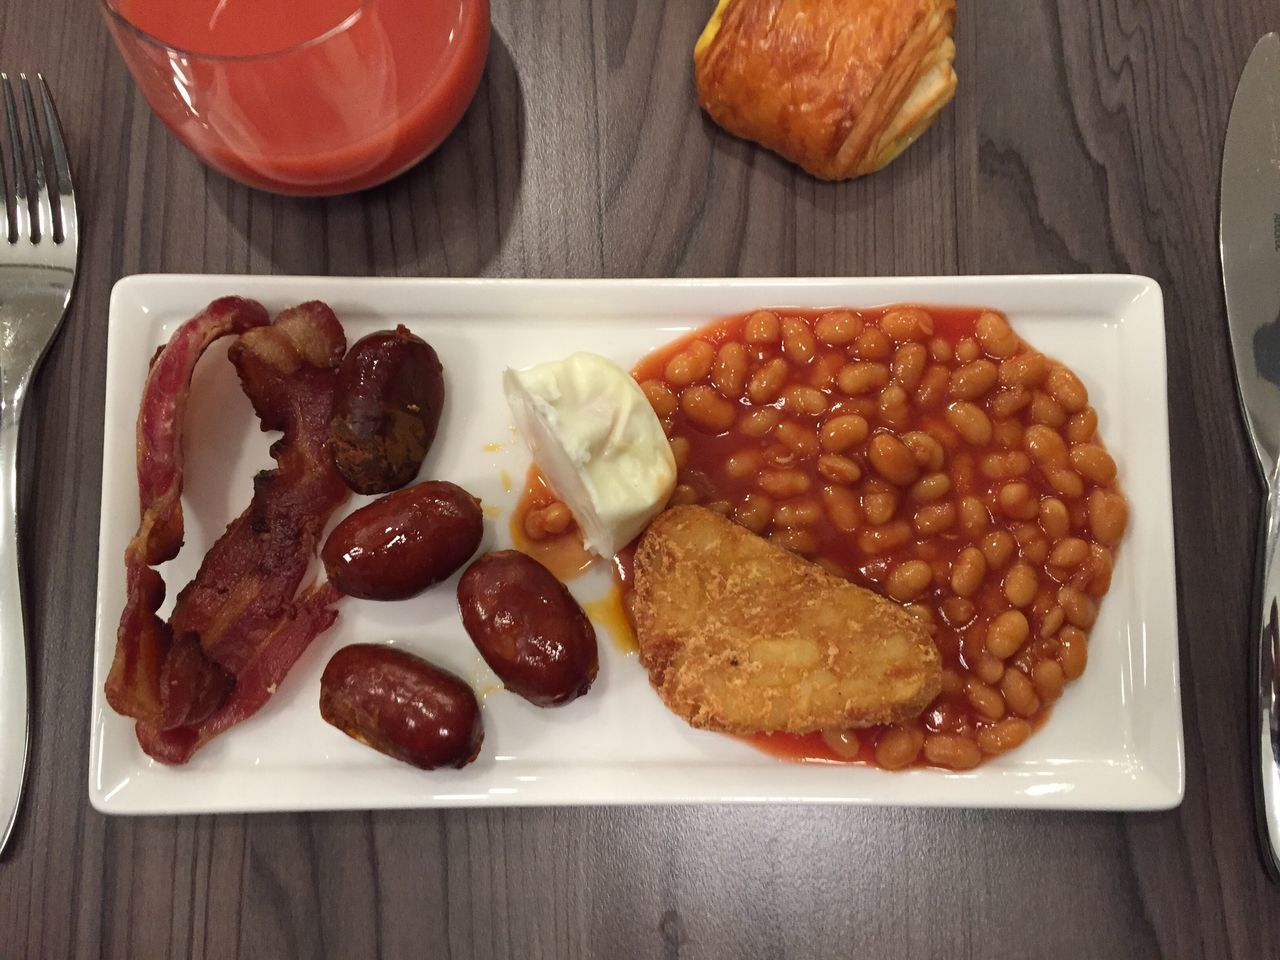 London Breakfast Beans English Breakfast Baked Beans Food And Drink Sausage Indoors  No People